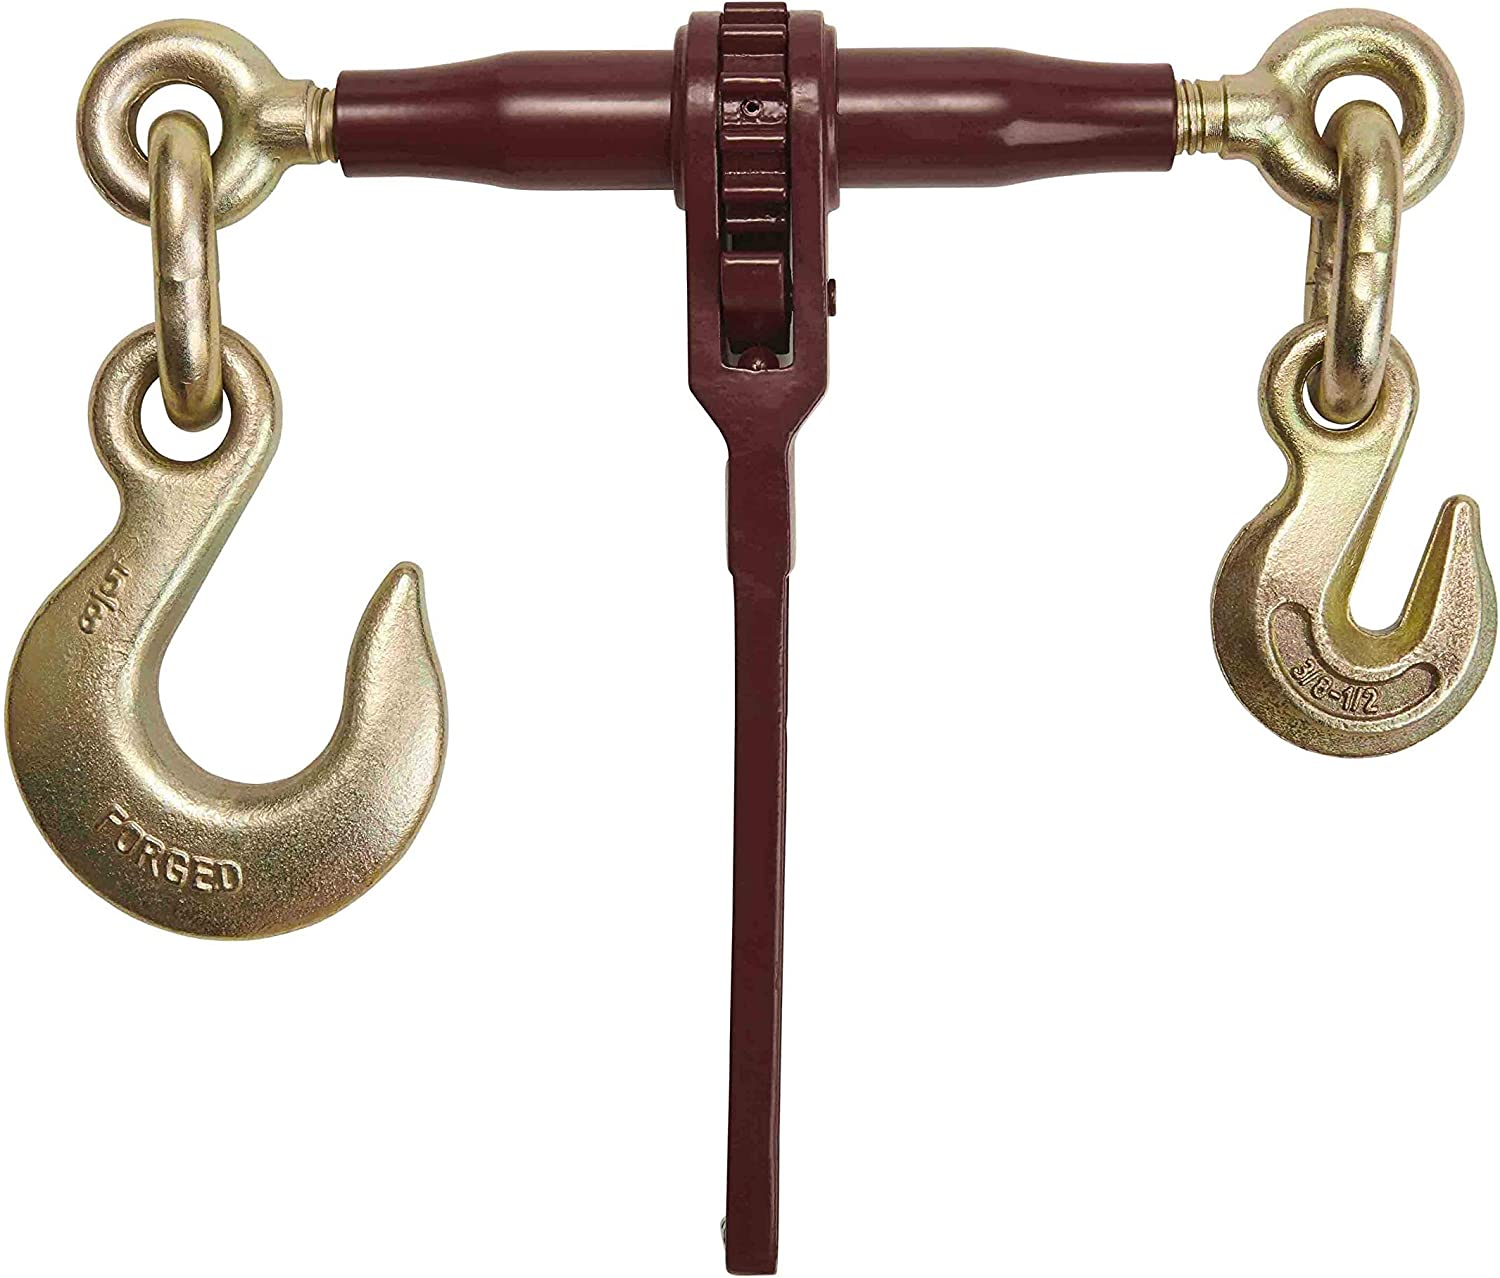 1//2 Grab Hook on One Side /& 1//2 Slip Hook on Other 12,000 Lbs Load Limit Chain Binders for Flatbed Truck Trailer Heavy Duty Specialty Pro Ratchet Load Chain Binder w// Grab Hook /& Slip Hook